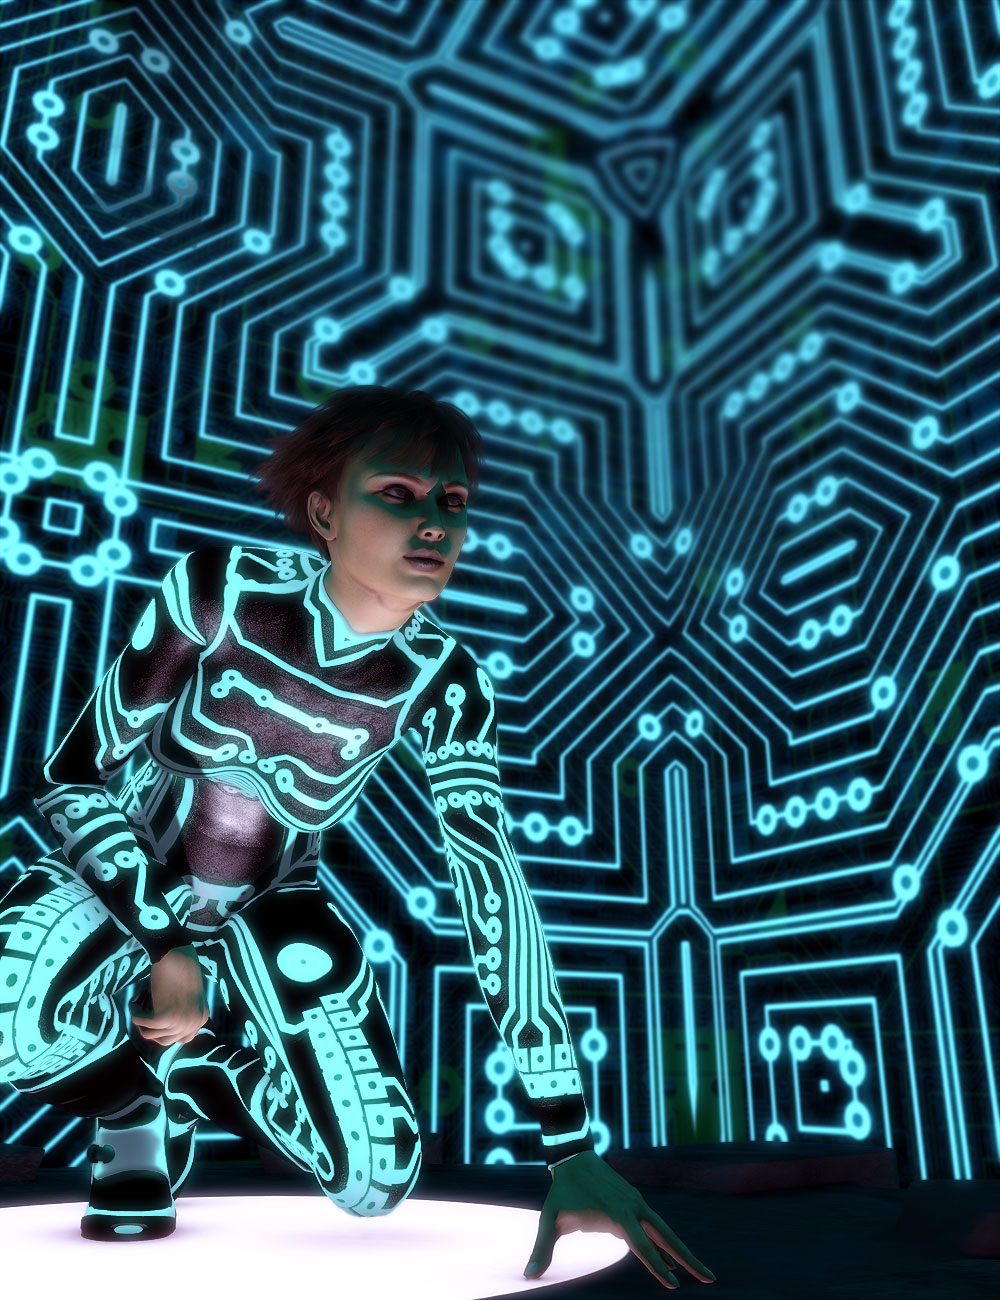 Cyber Circuit Brushes by: Orestes Graphics, 3D Models by Daz 3D